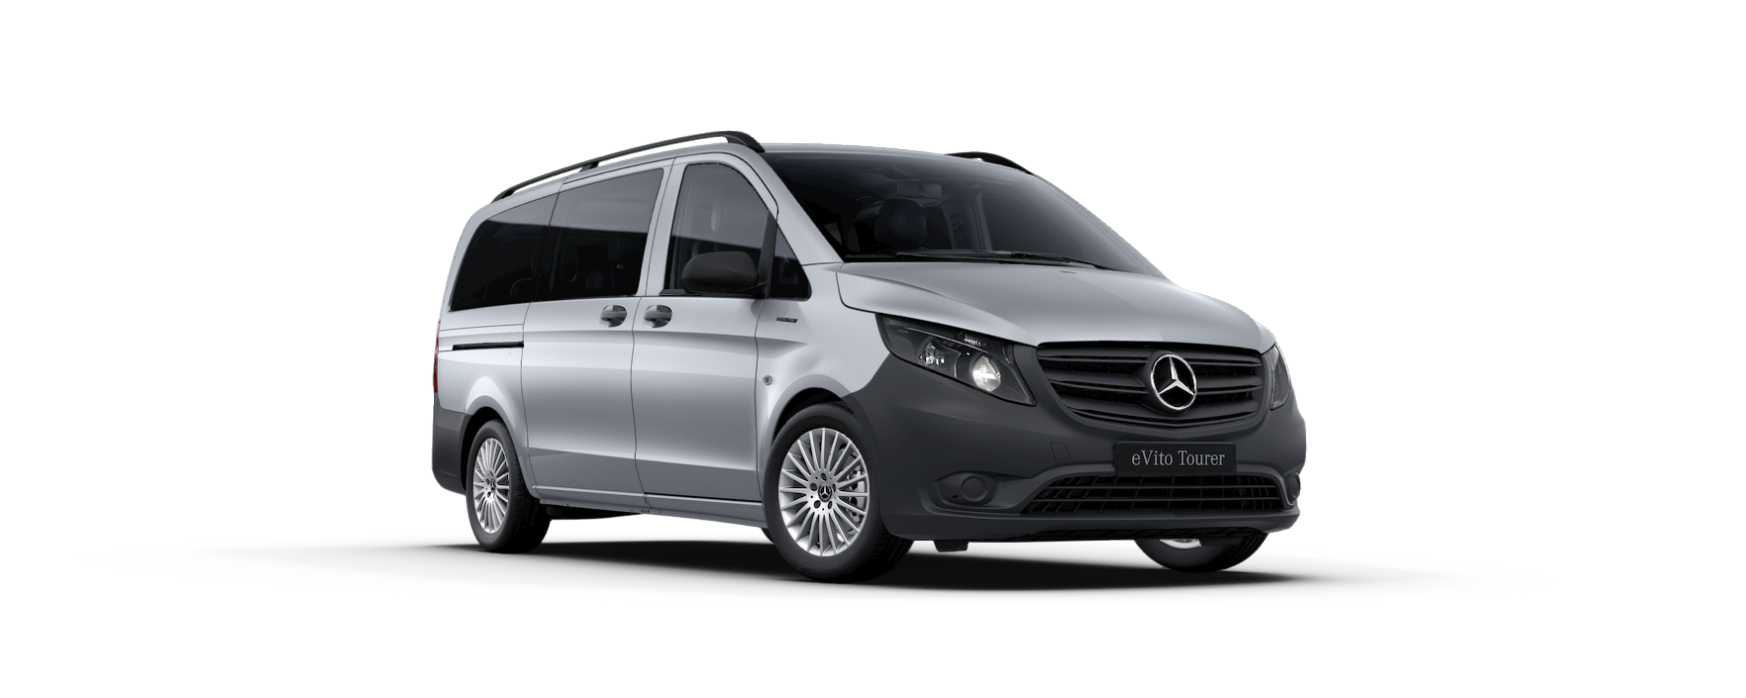 eVito Tourer, brilliant silver metallic